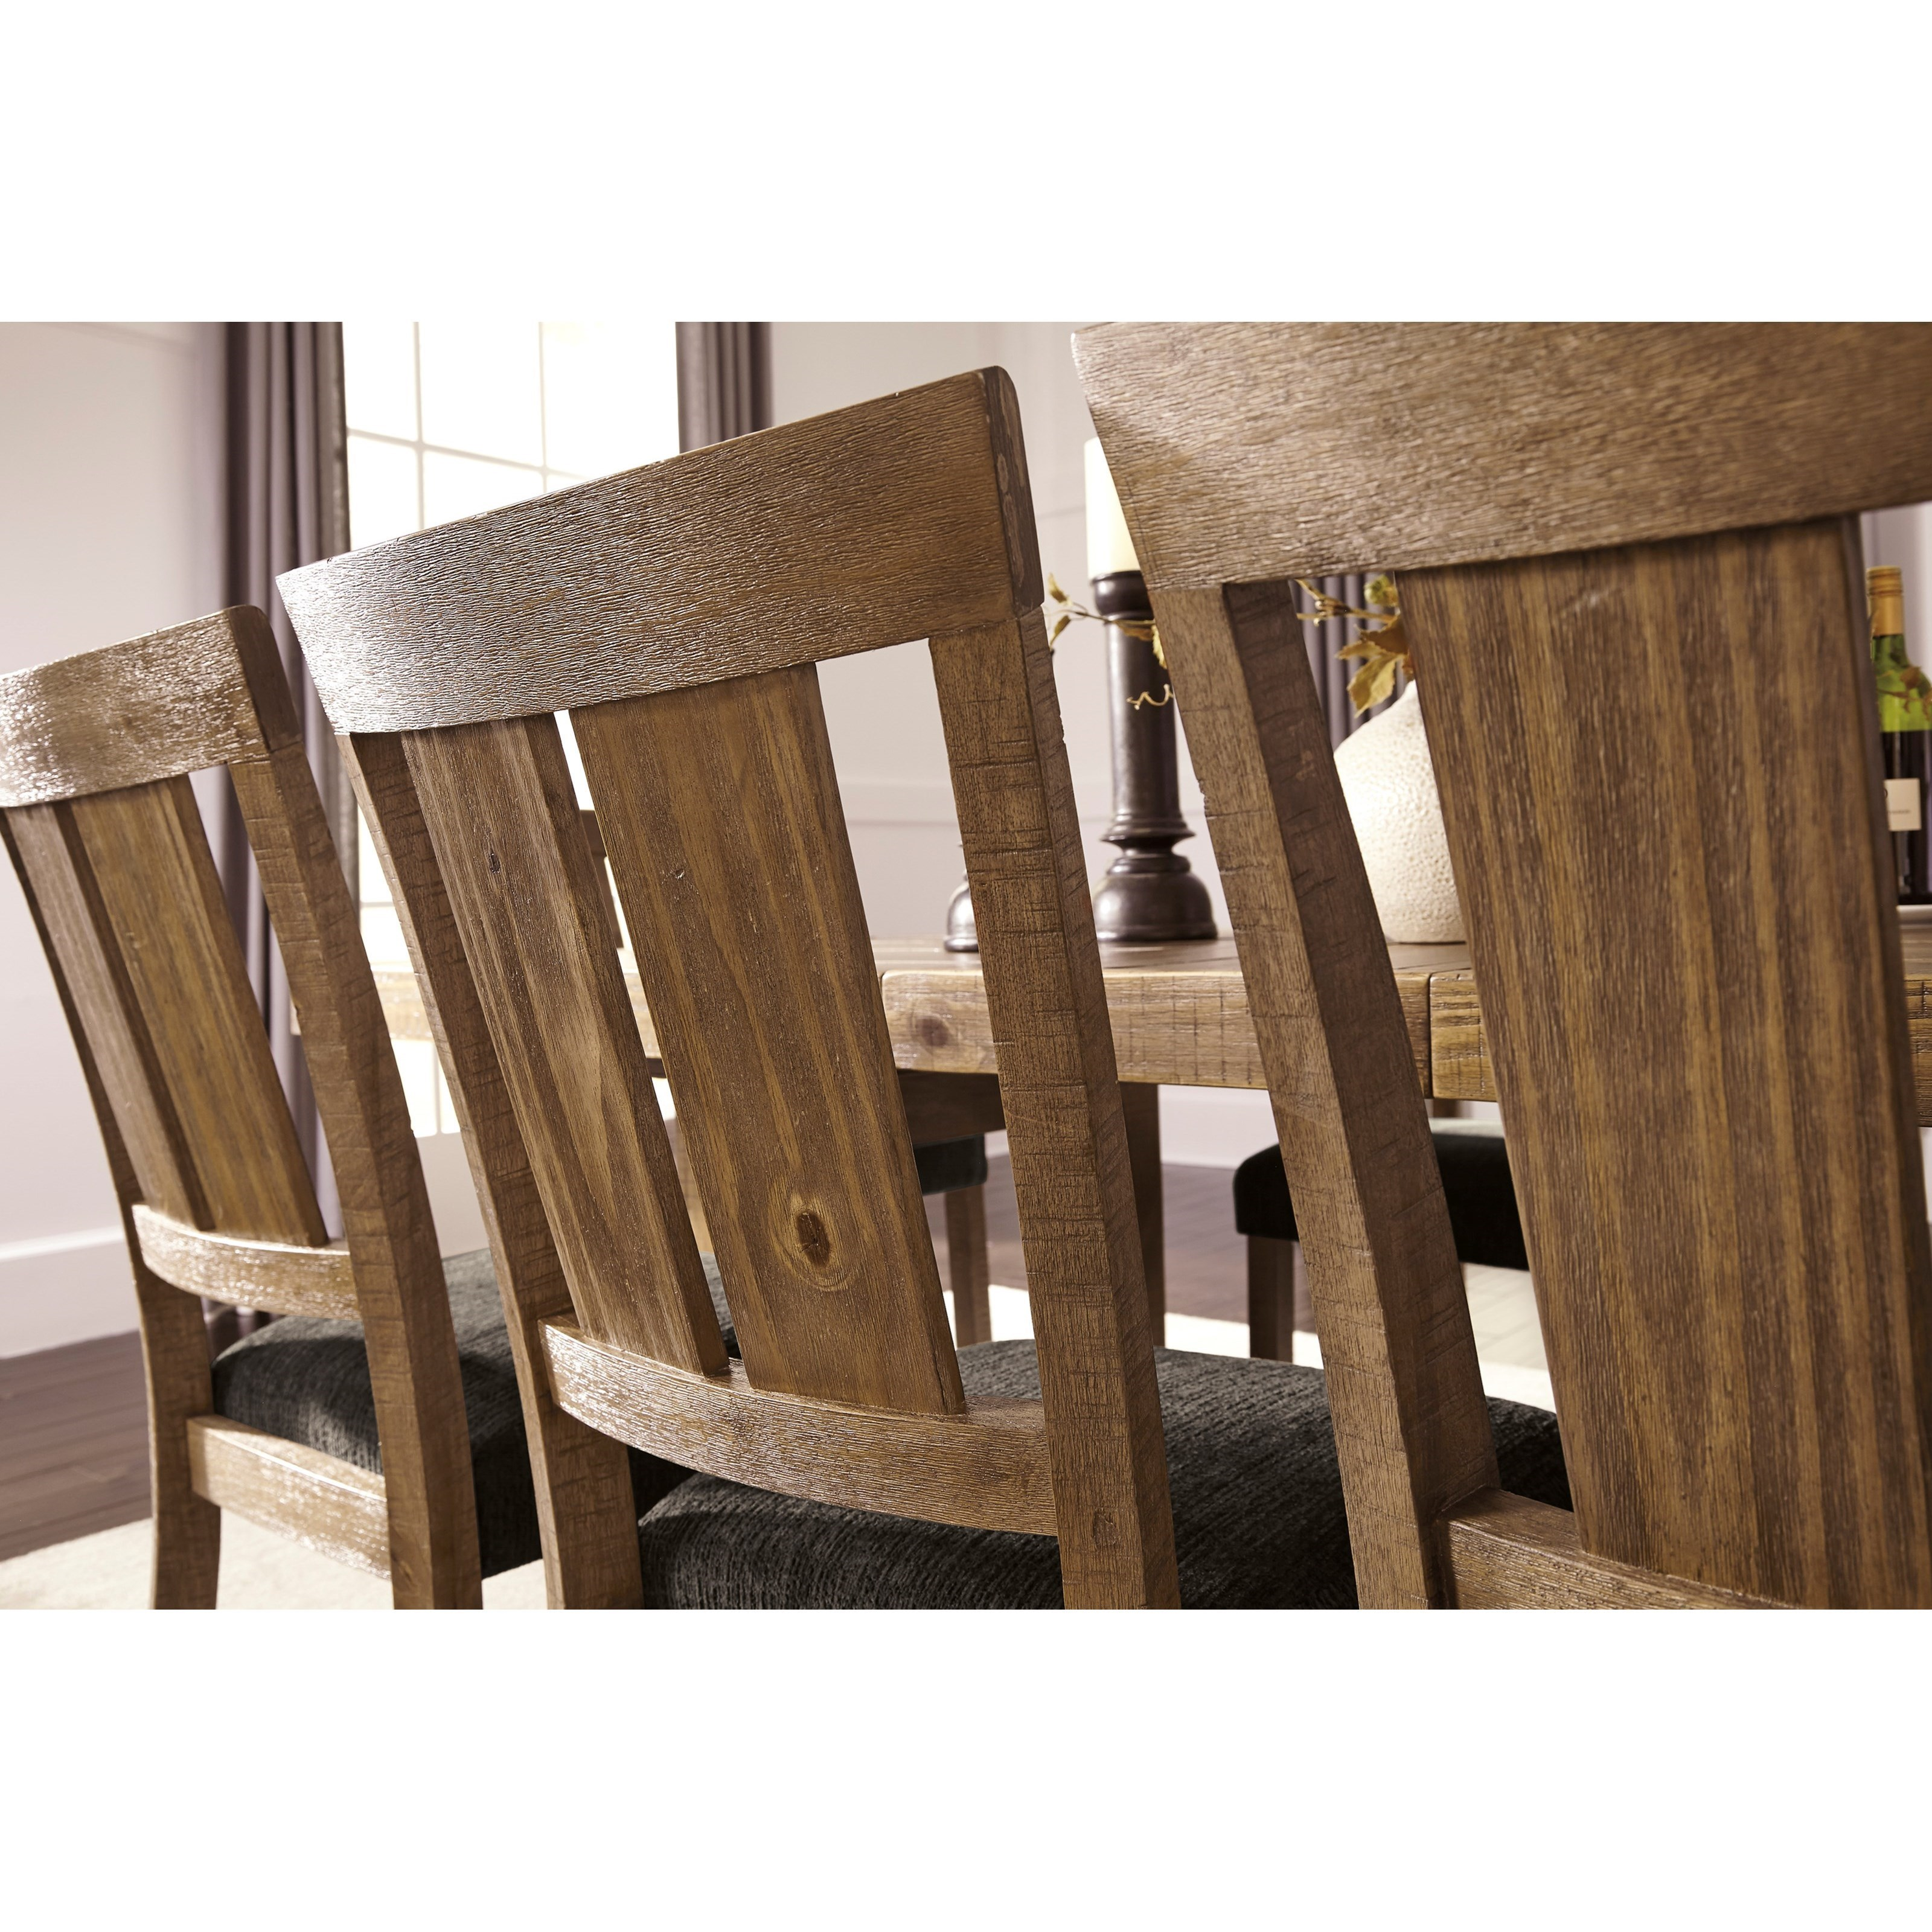 Signature Design by Ashley Tamilo 7 Piece Table & Chair